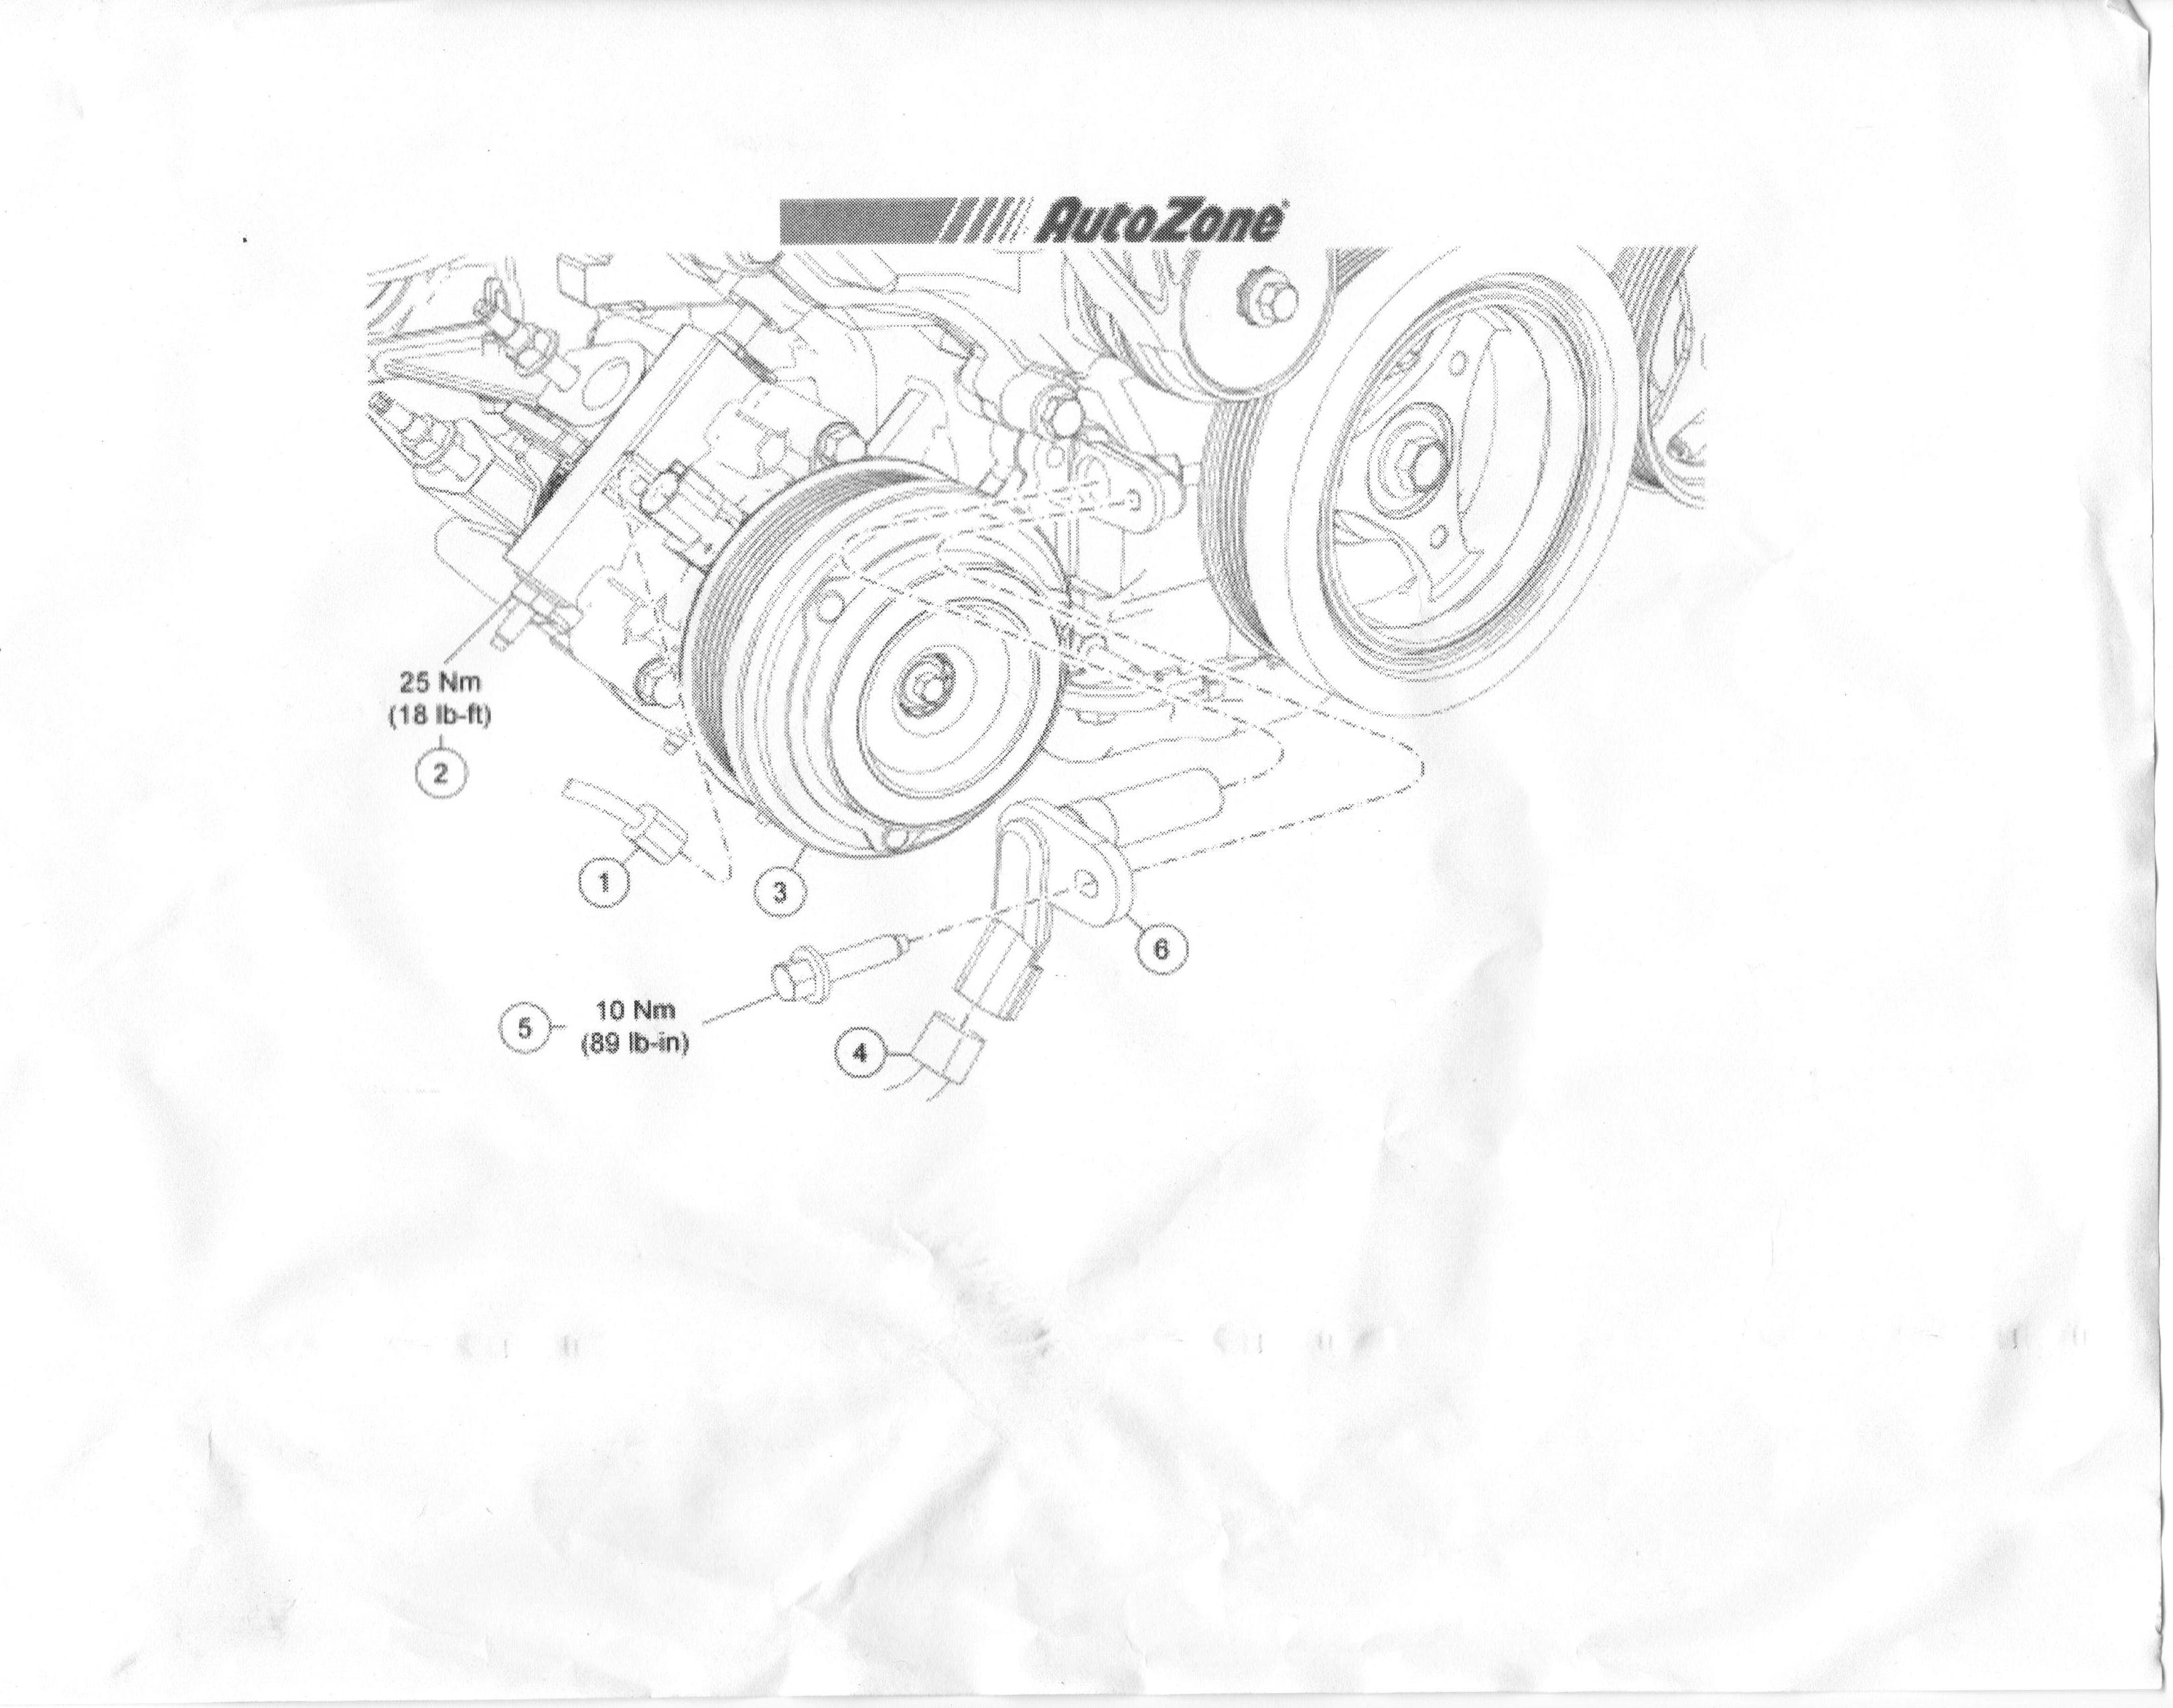 136484d1312676651 crankshaft position sensor problem cpk 001 crankshaft position sensor problem page 2 ford mustang forum  at gsmx.co